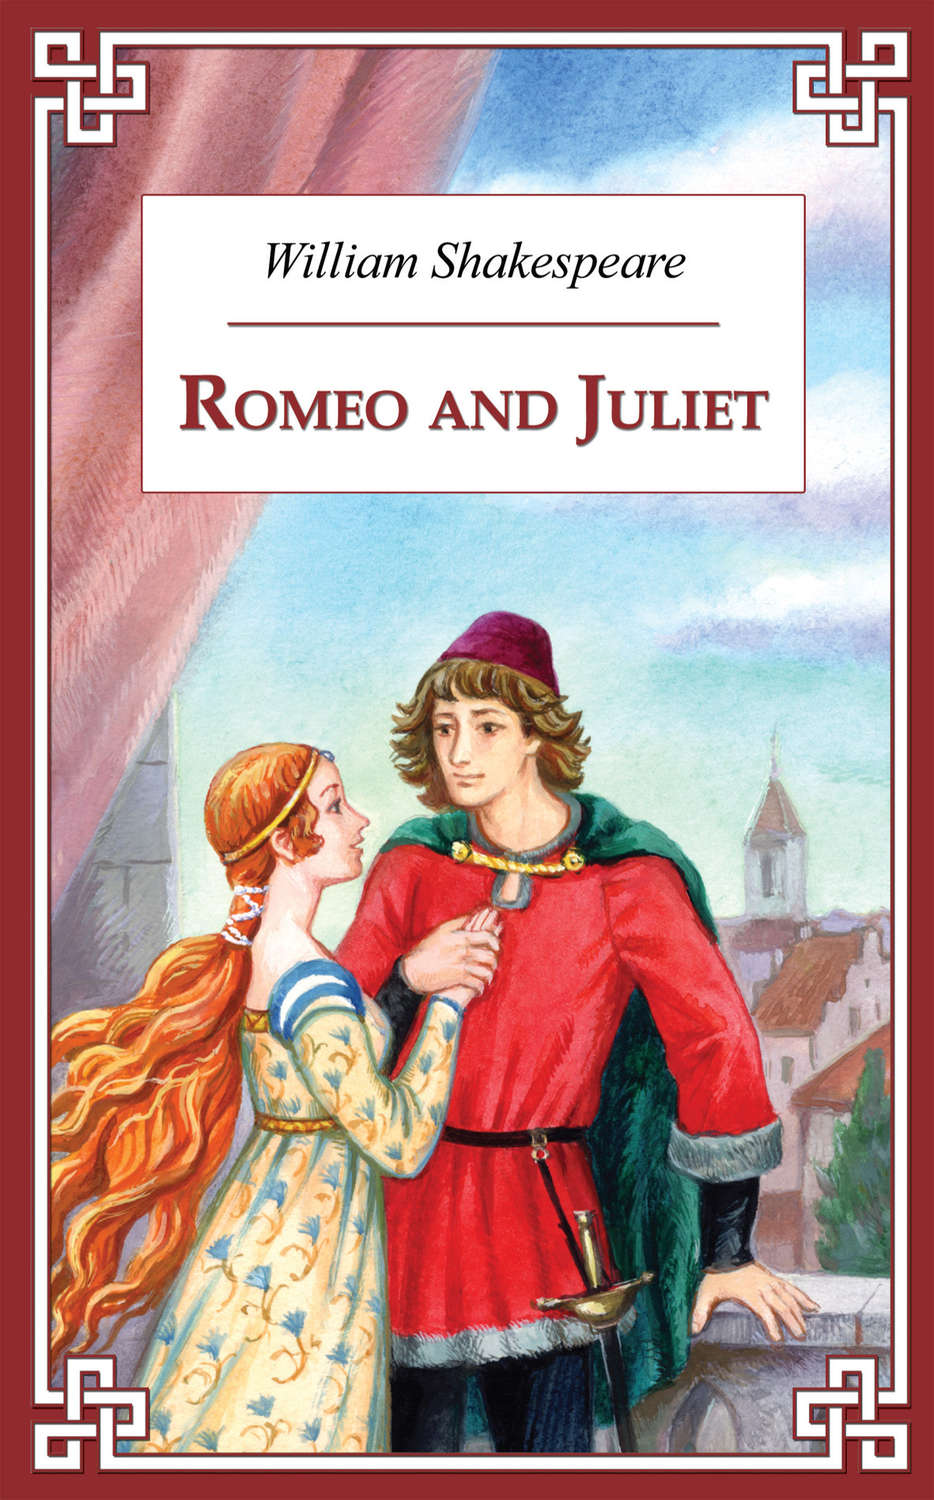 an overview of the tragic choices of romeo montague in romeo and juliet a play by william shakespear A summary of act 1, scene 1 in william or section of romeo and juliet and showing that while the montagues and capulets are gloriously tragic.